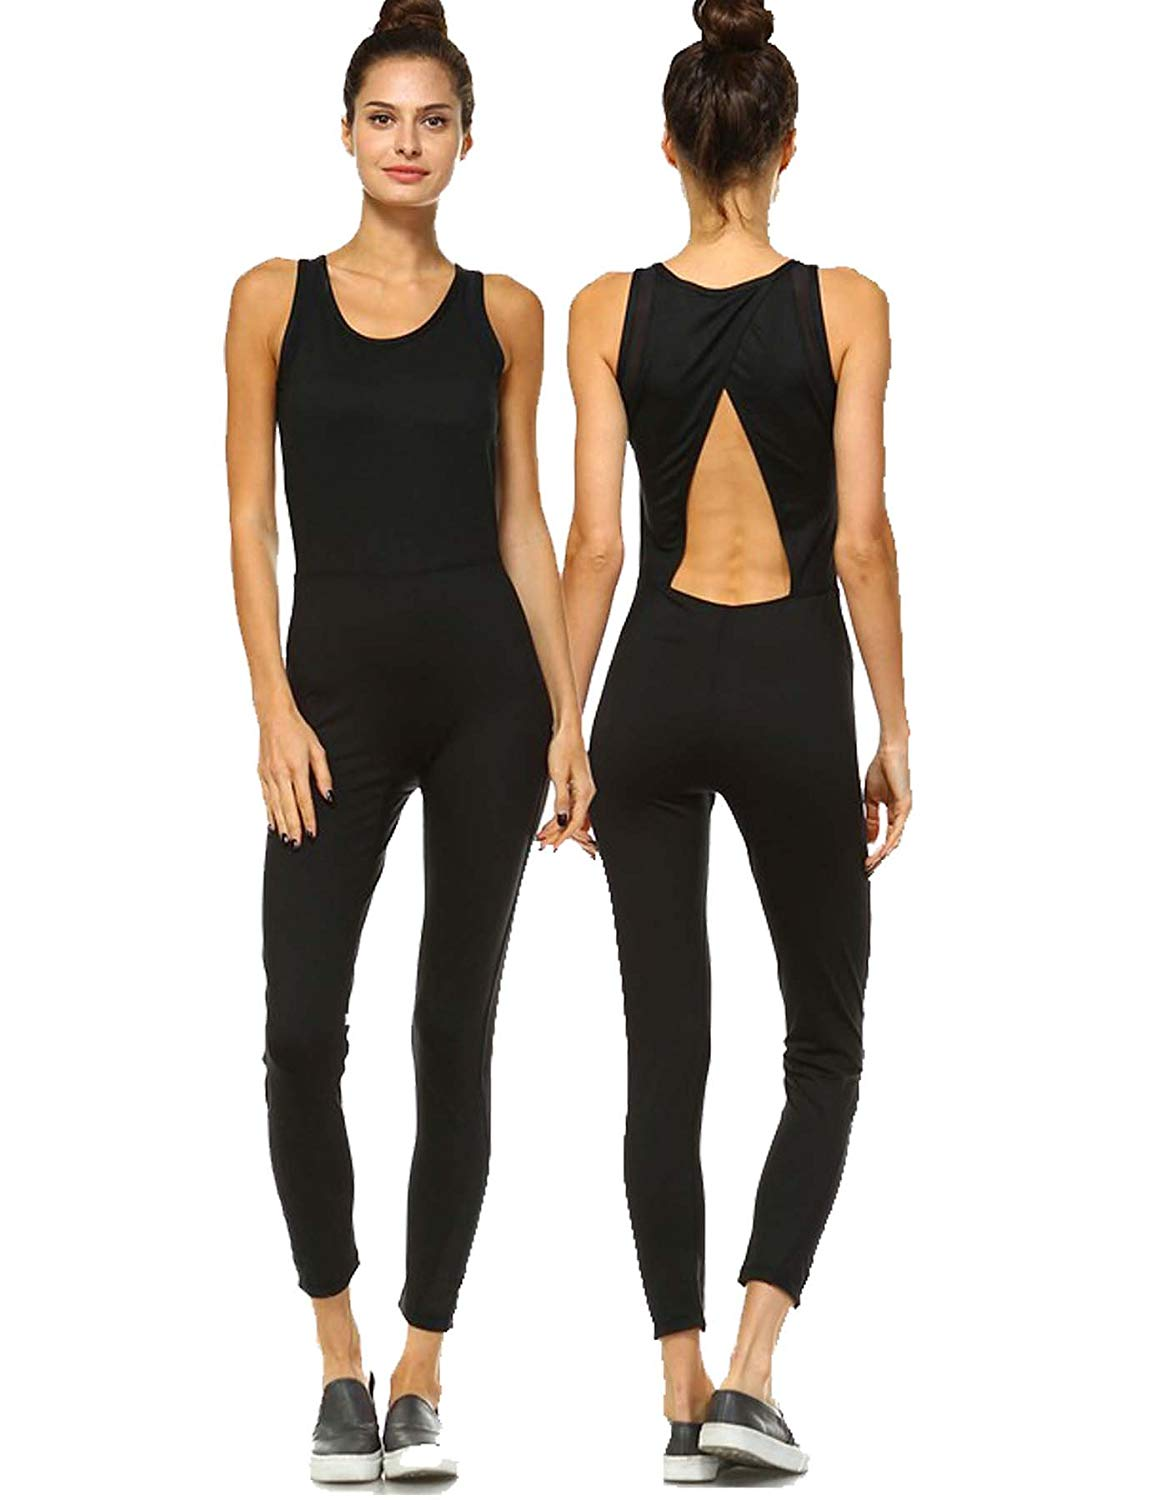 3a50ce6fdc Get Quotations · Mind Code Women s Active Yoga Wear Sleeveless Unitard  Jumpsuit Bodysuit